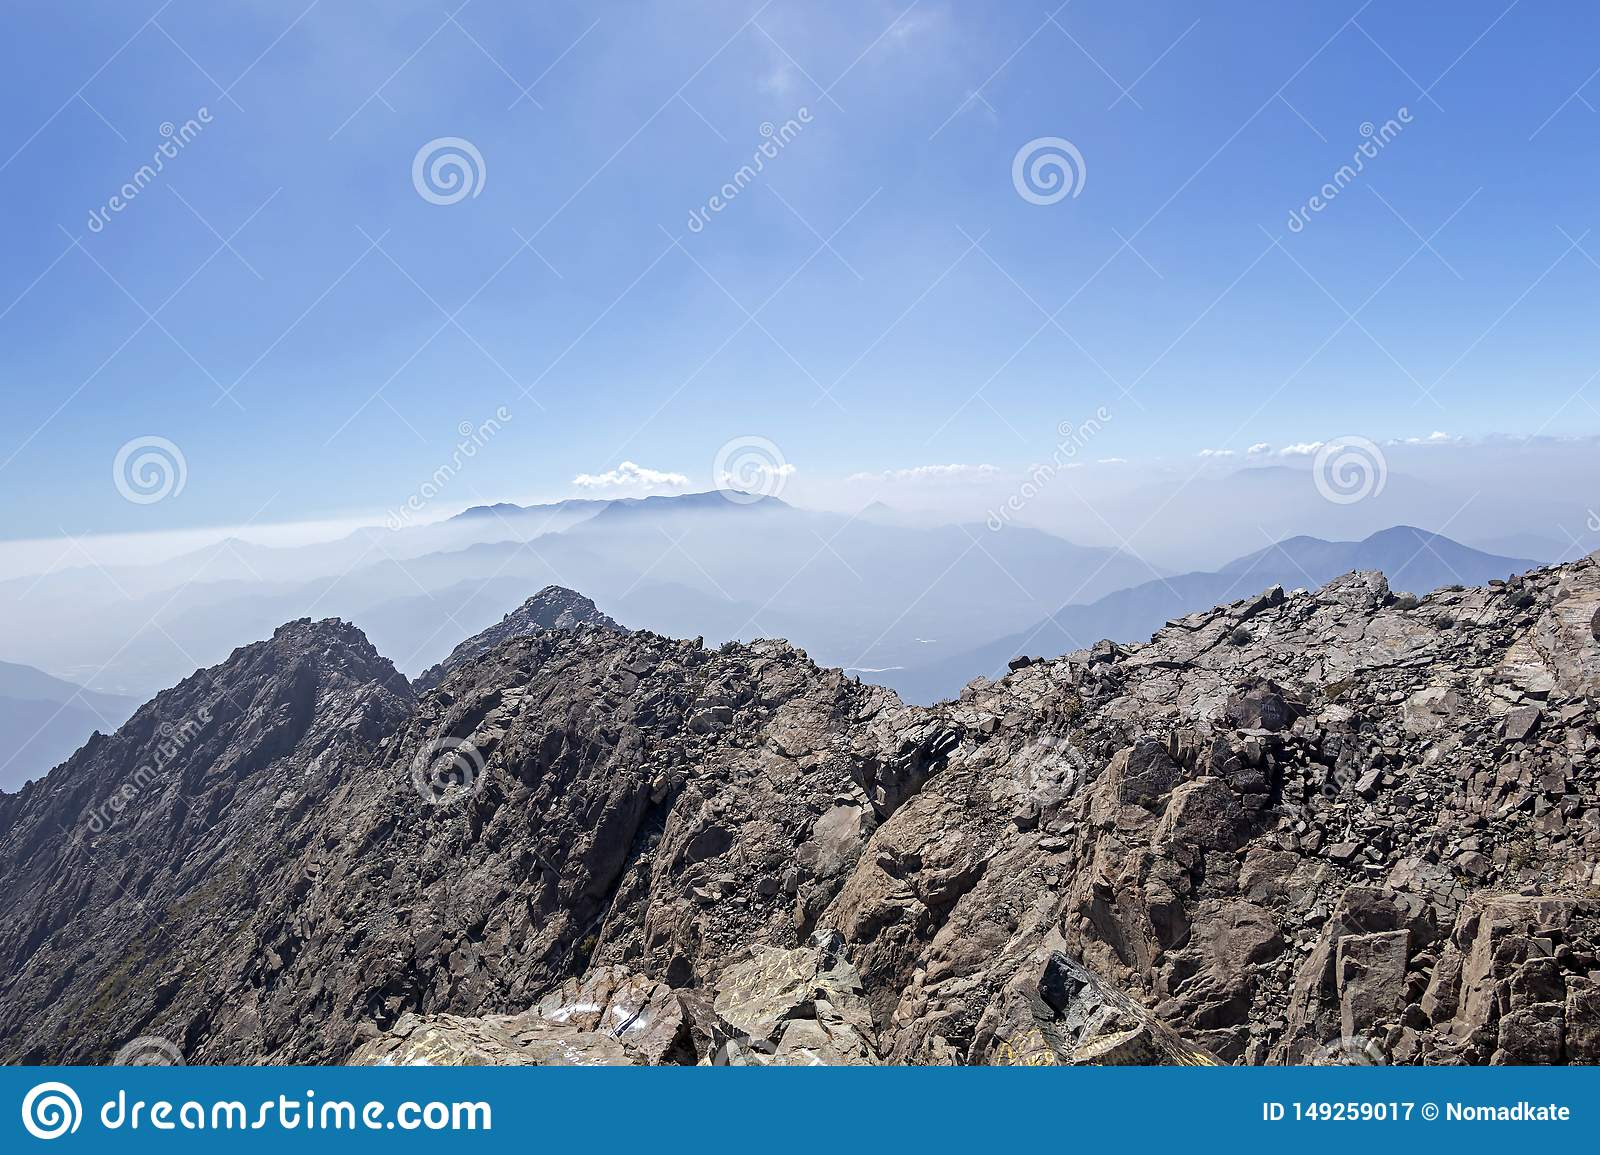 Mountain summit view with landscape of Andes and Aconcagua on clear day in La Campana National park in central Chile, South